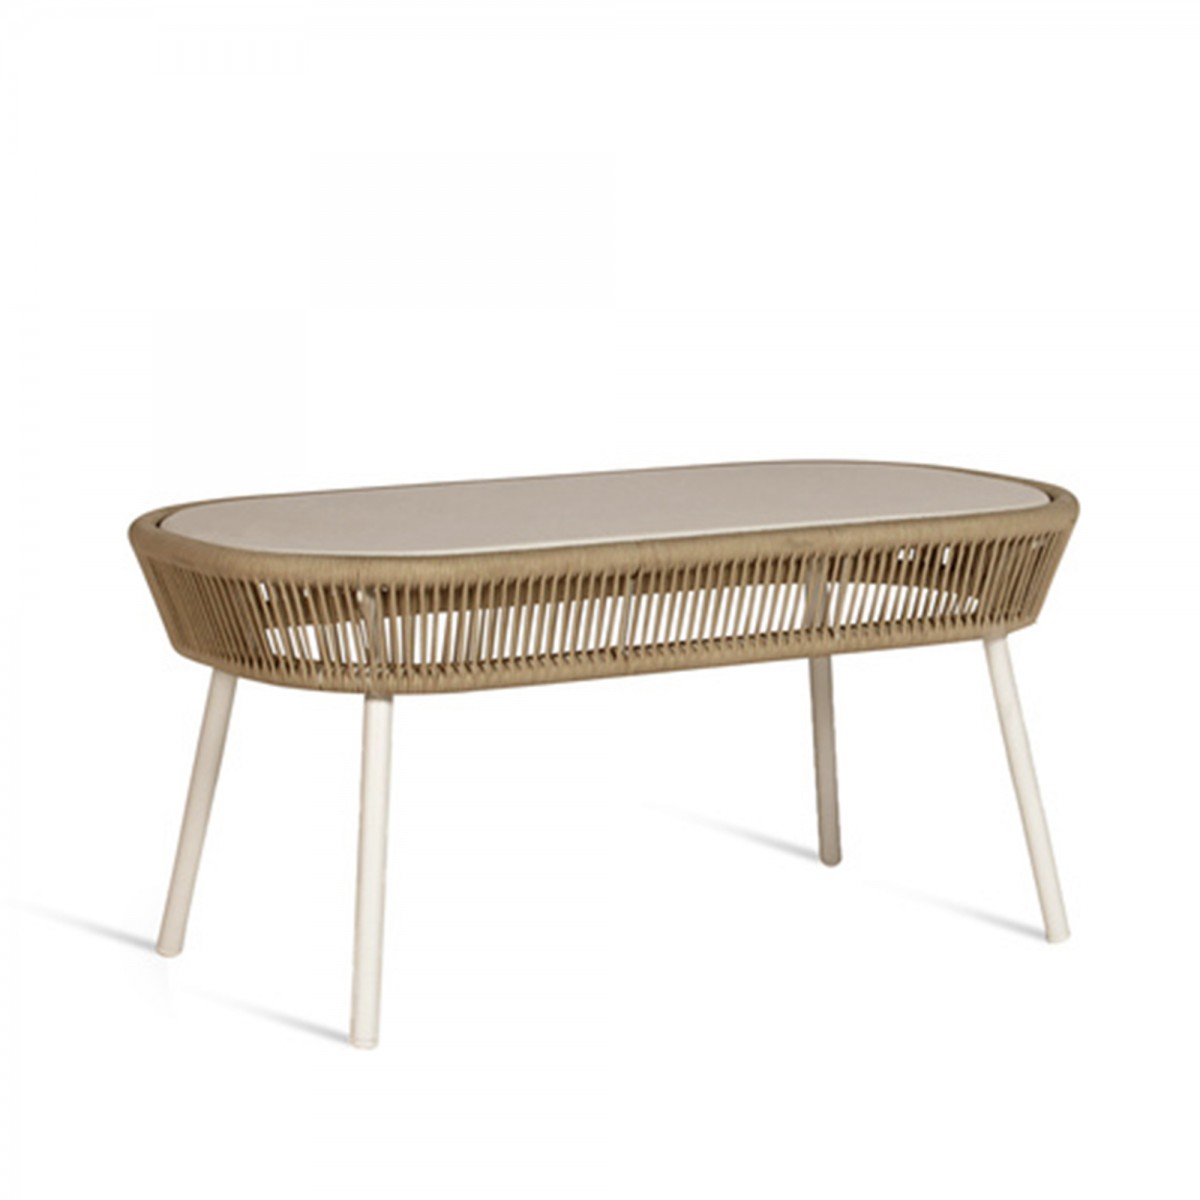 Super Loop Rope Coffee Table Vincent Sheppard Pdpeps Interior Chair Design Pdpepsorg